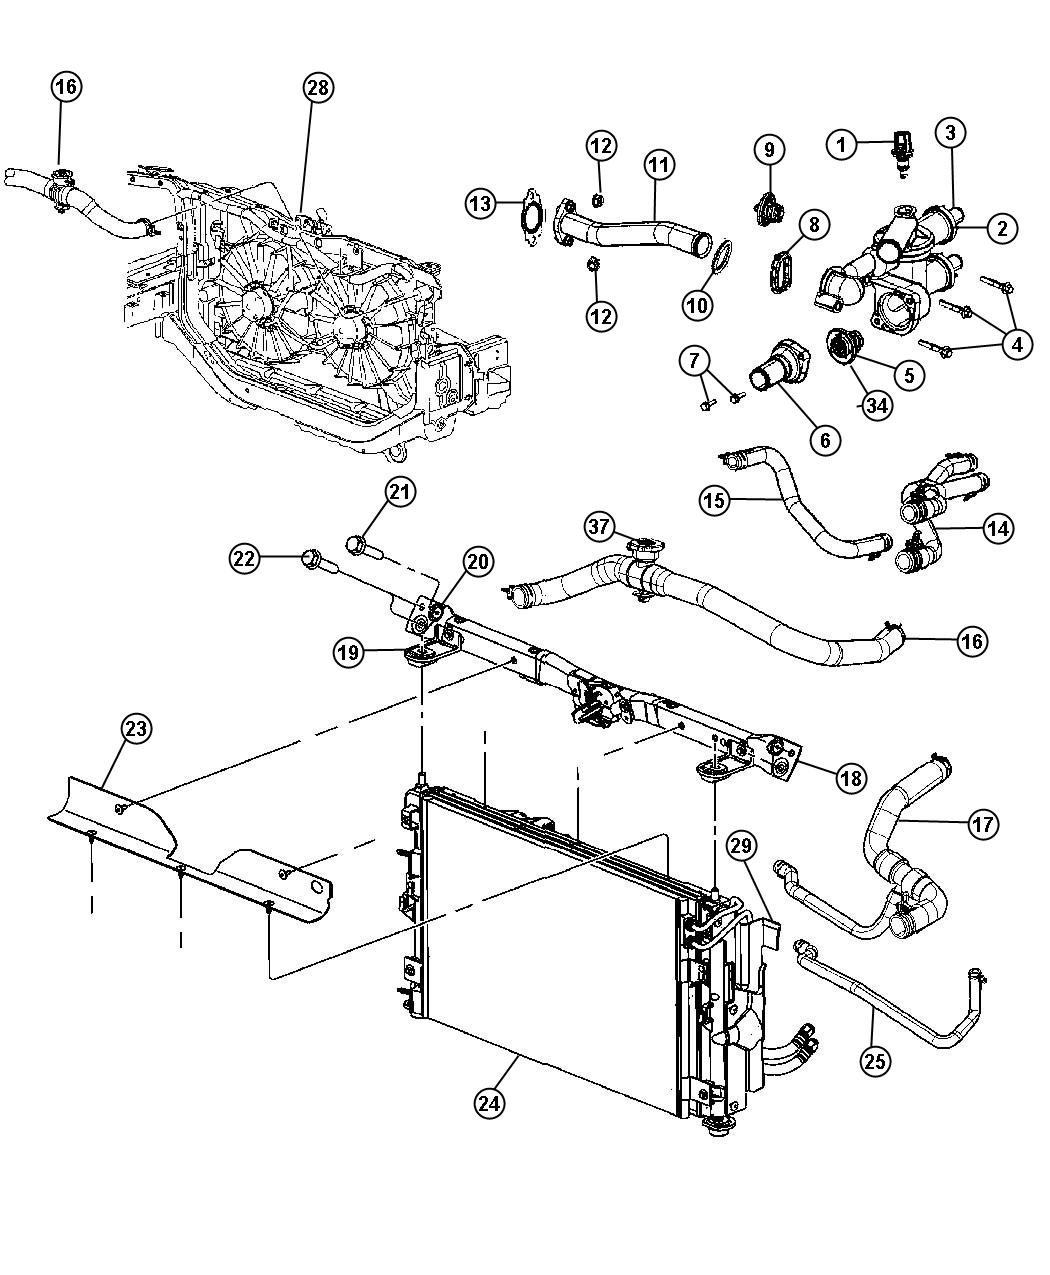 06 Charger Engine Diagram